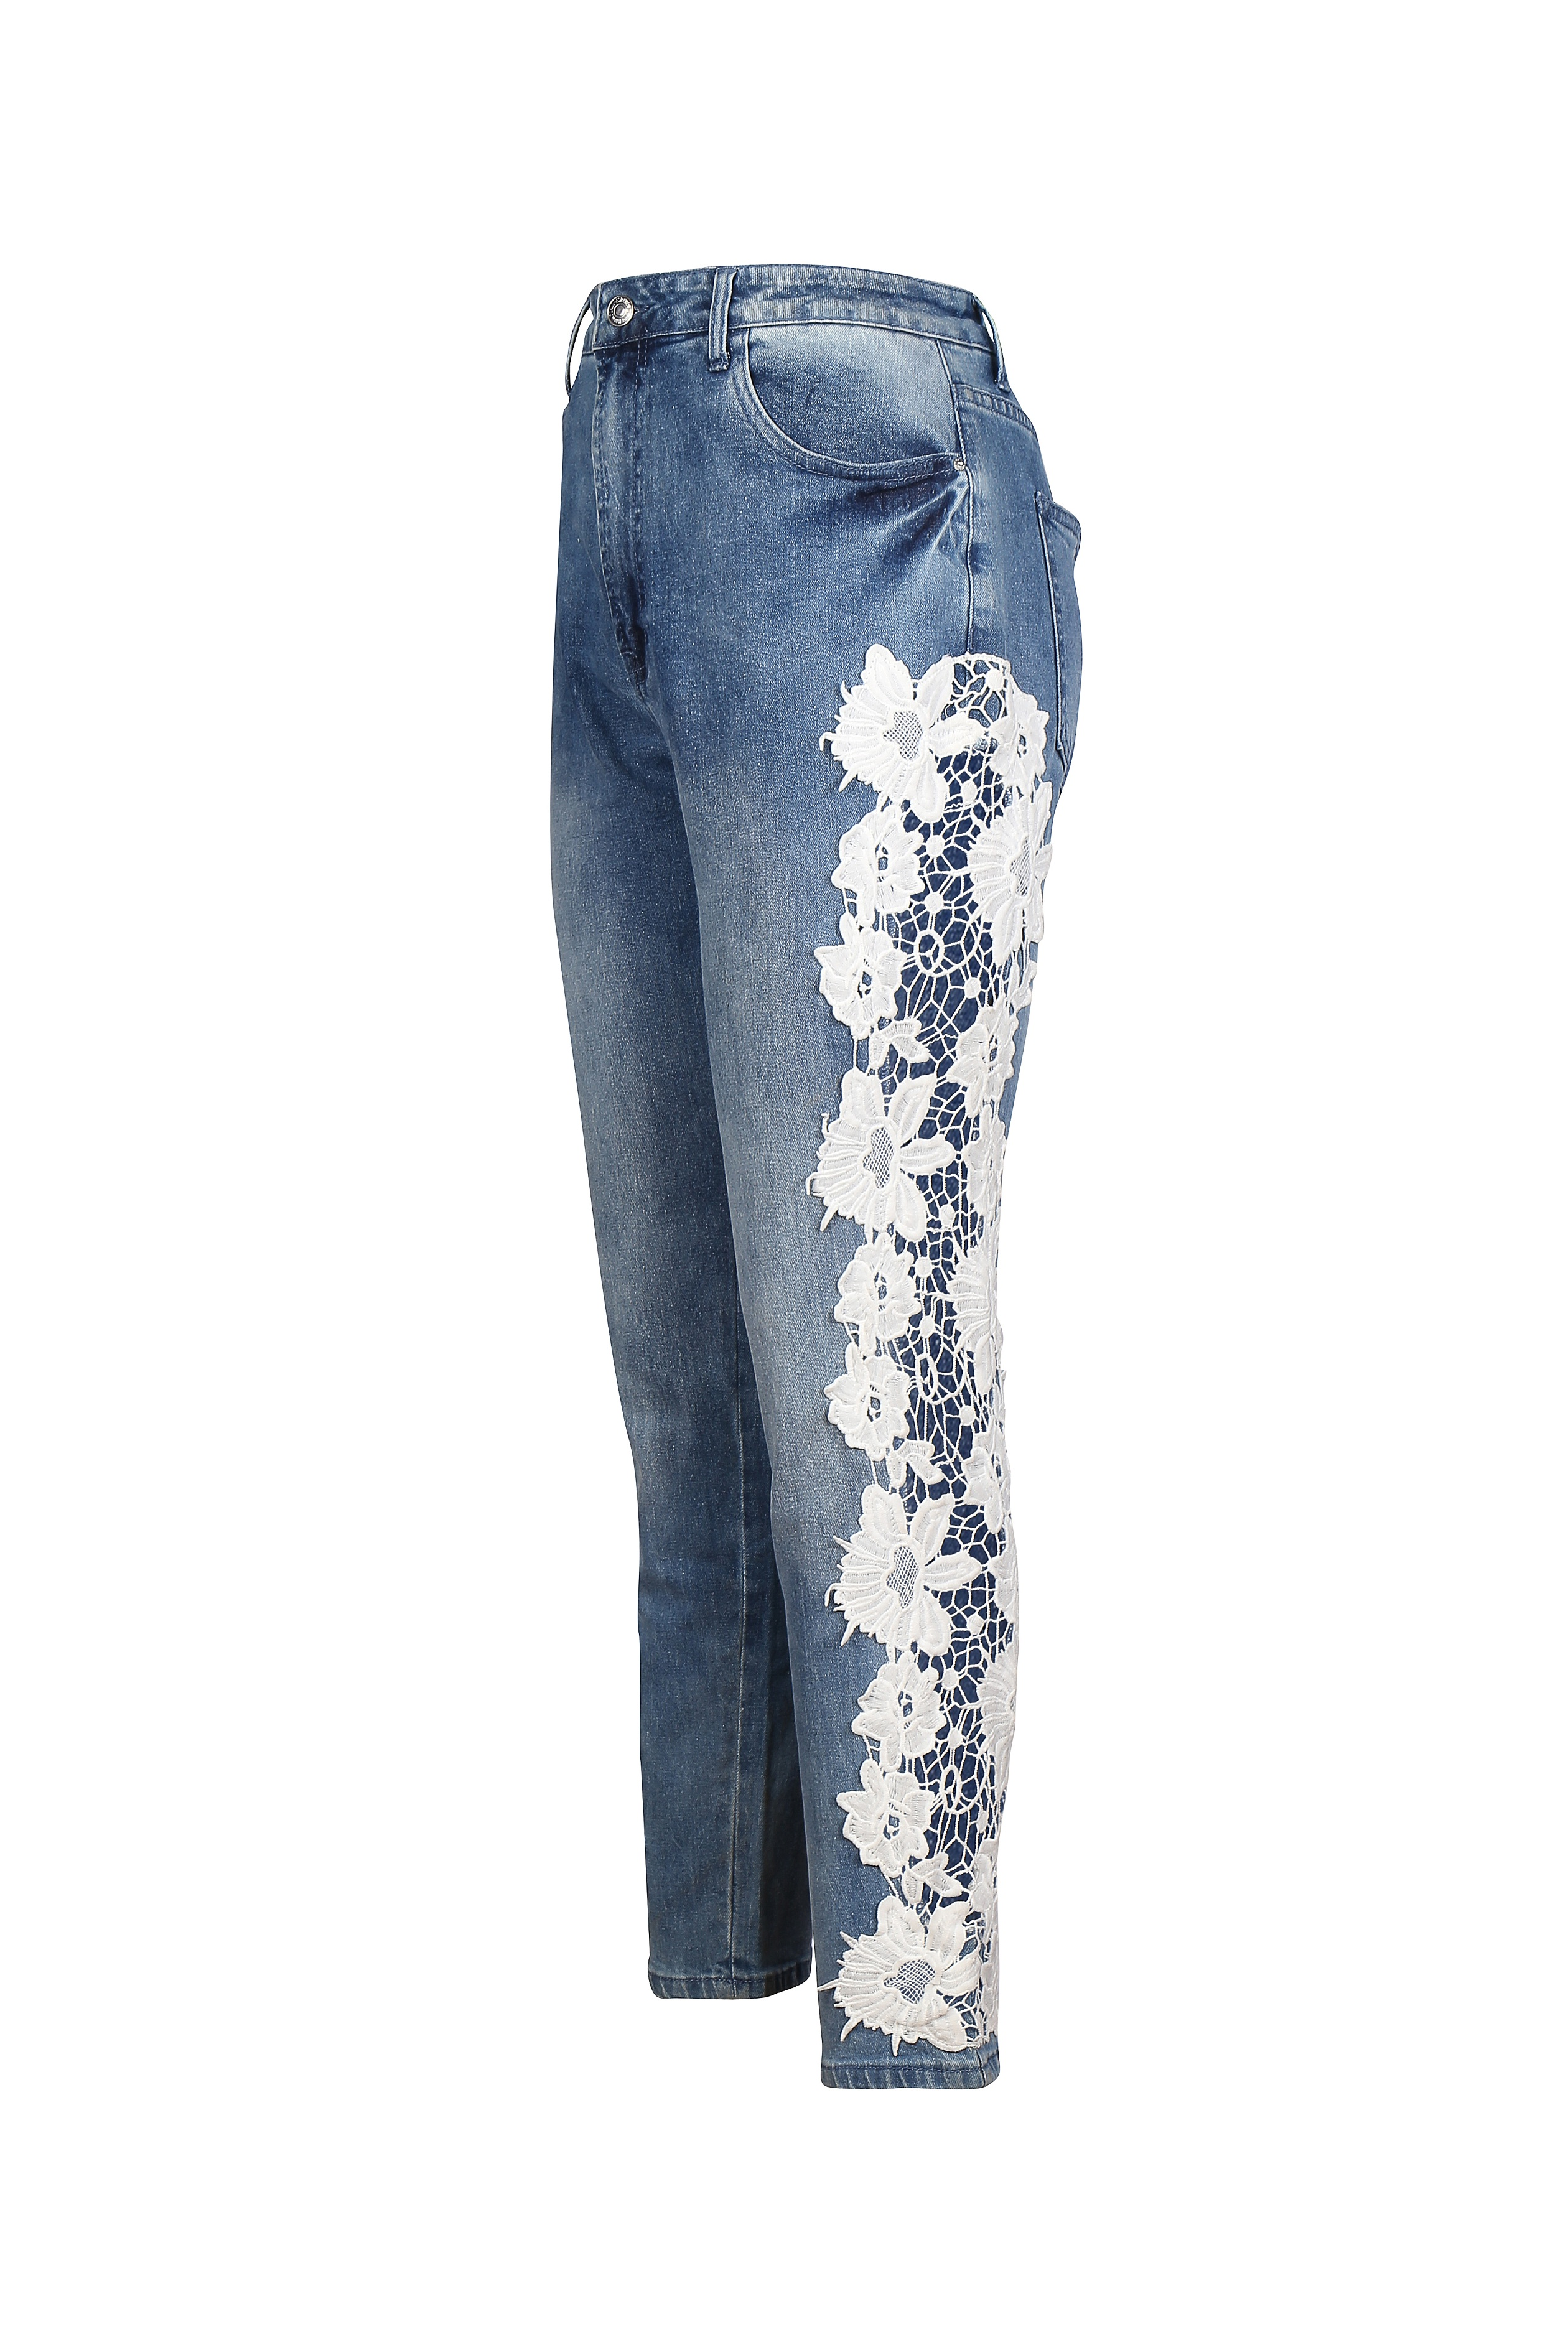 Forever21_Navy blue jeans with white lace detail for women - Rs. 2249 (1)